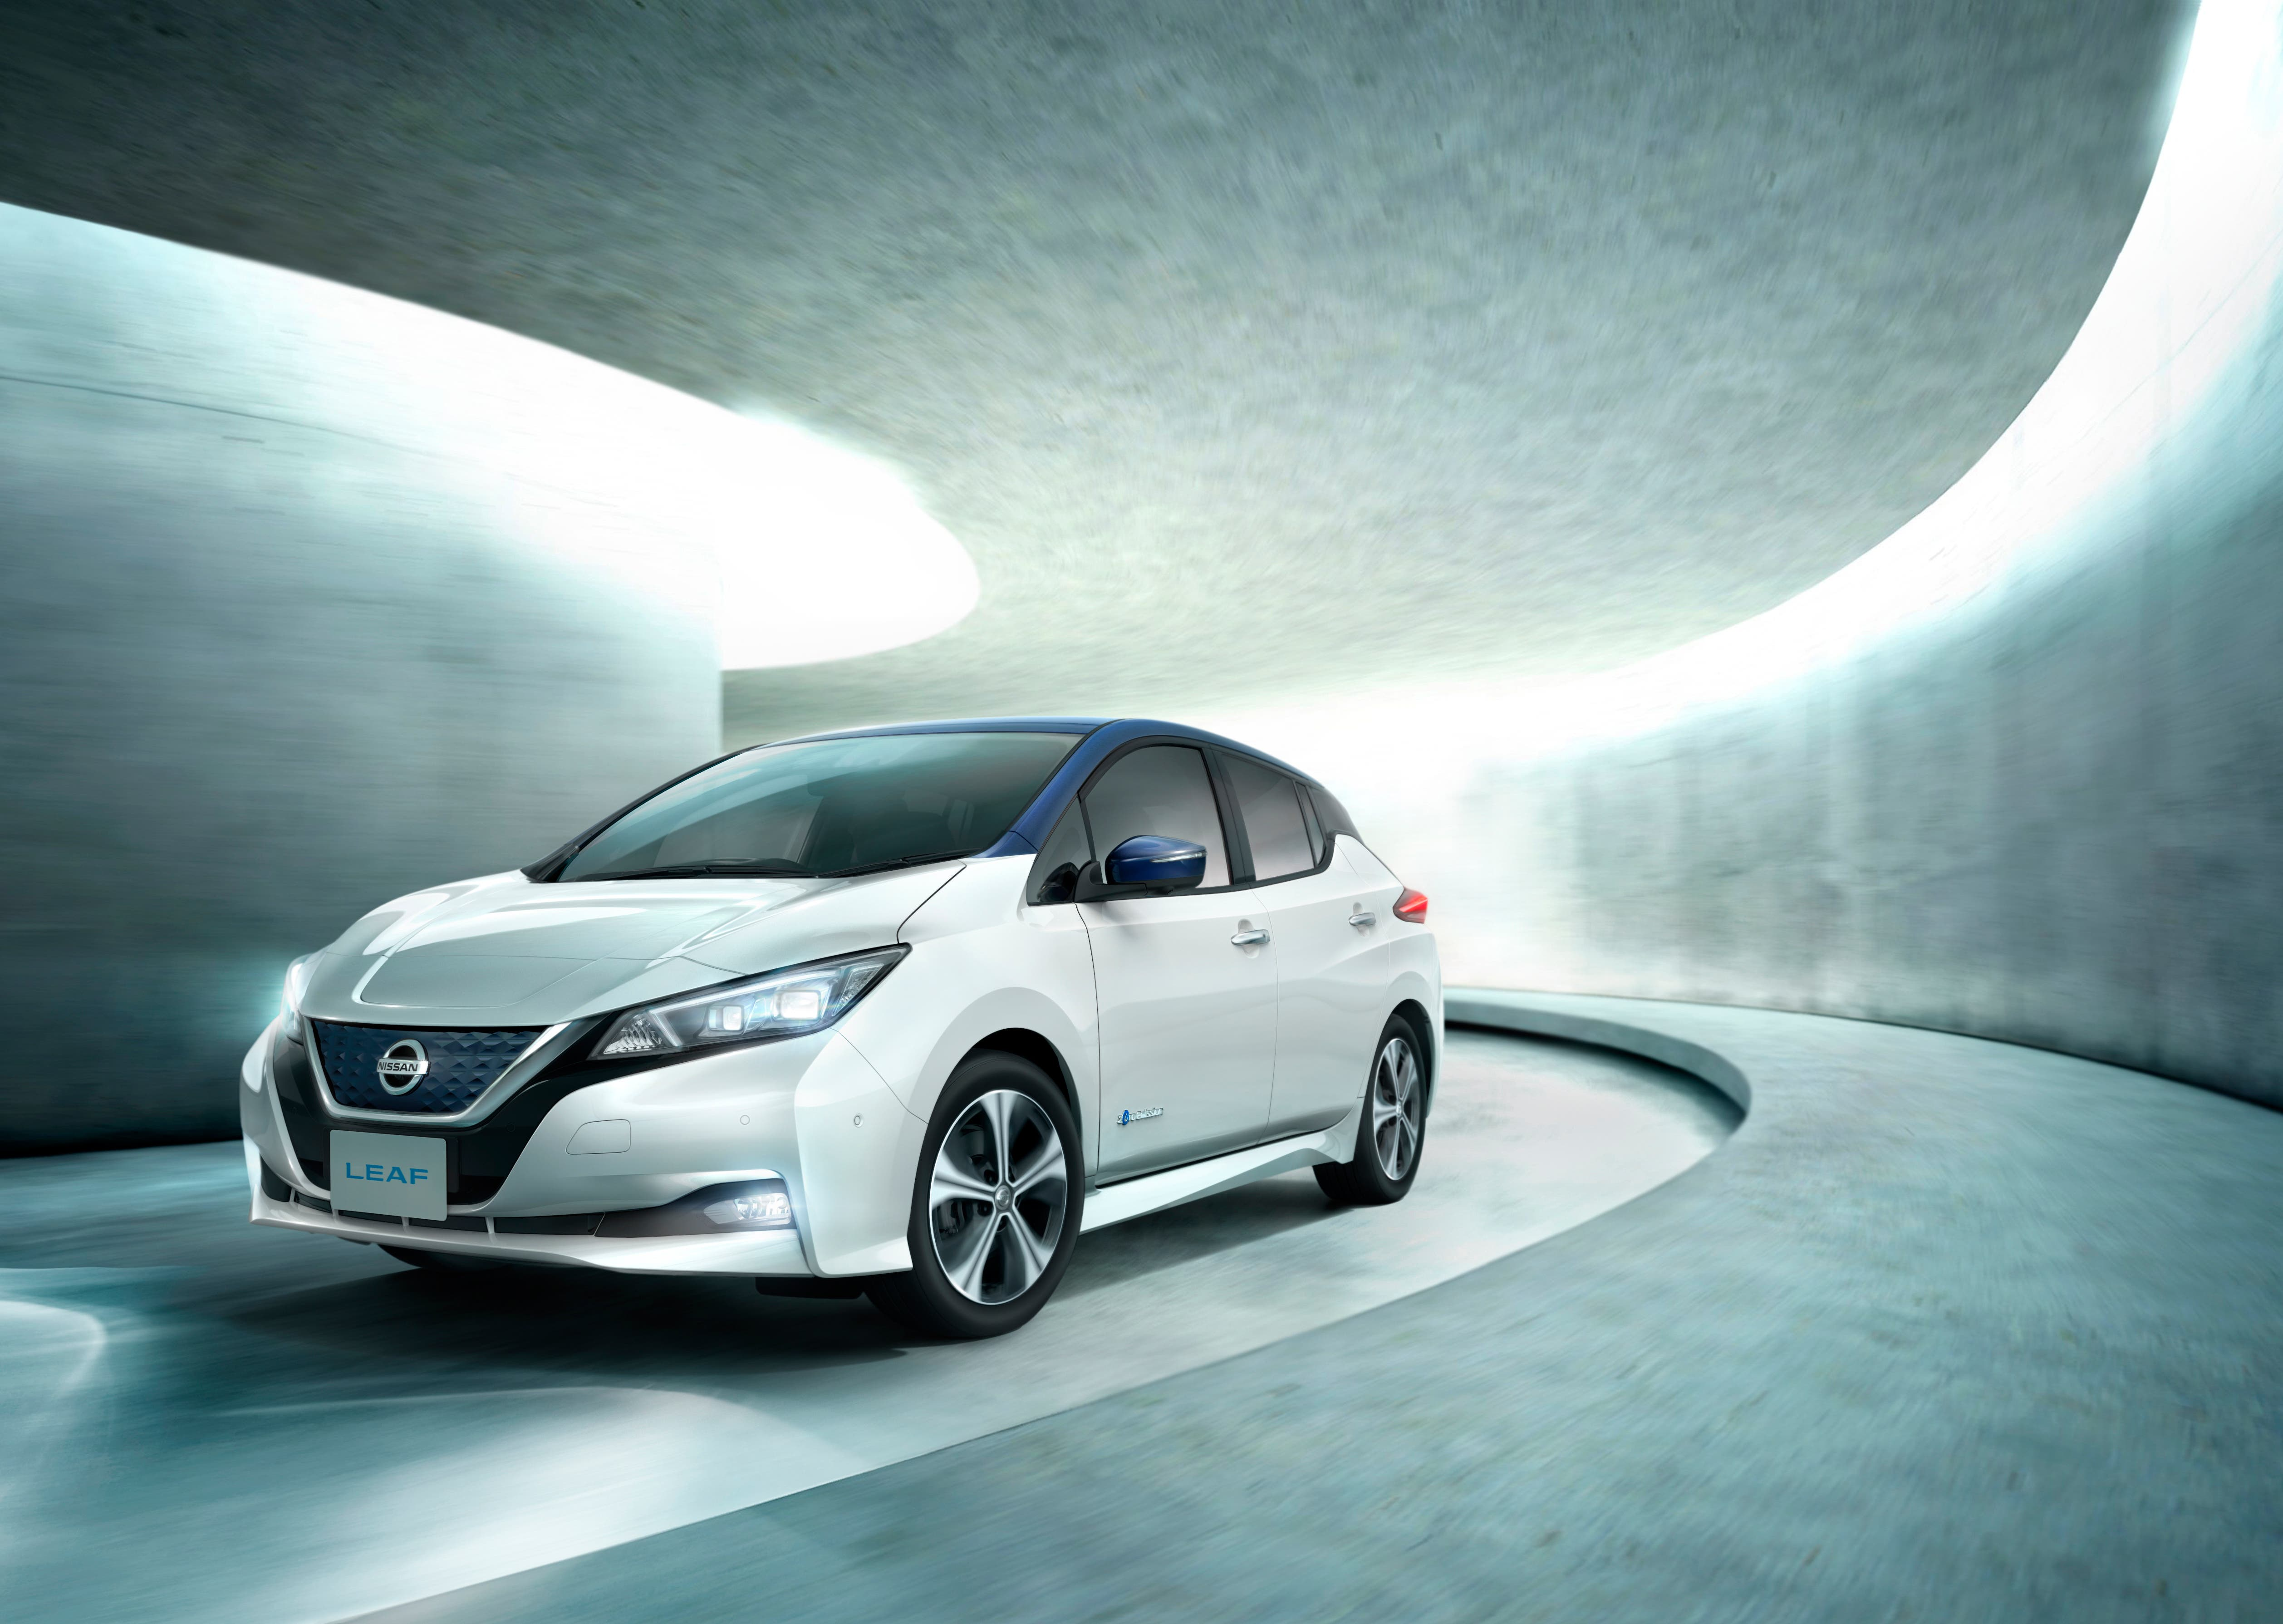 The New Nissan Leaf Is On In An And Will Be Arriving At Dealers U S Canada Over Next Two Months